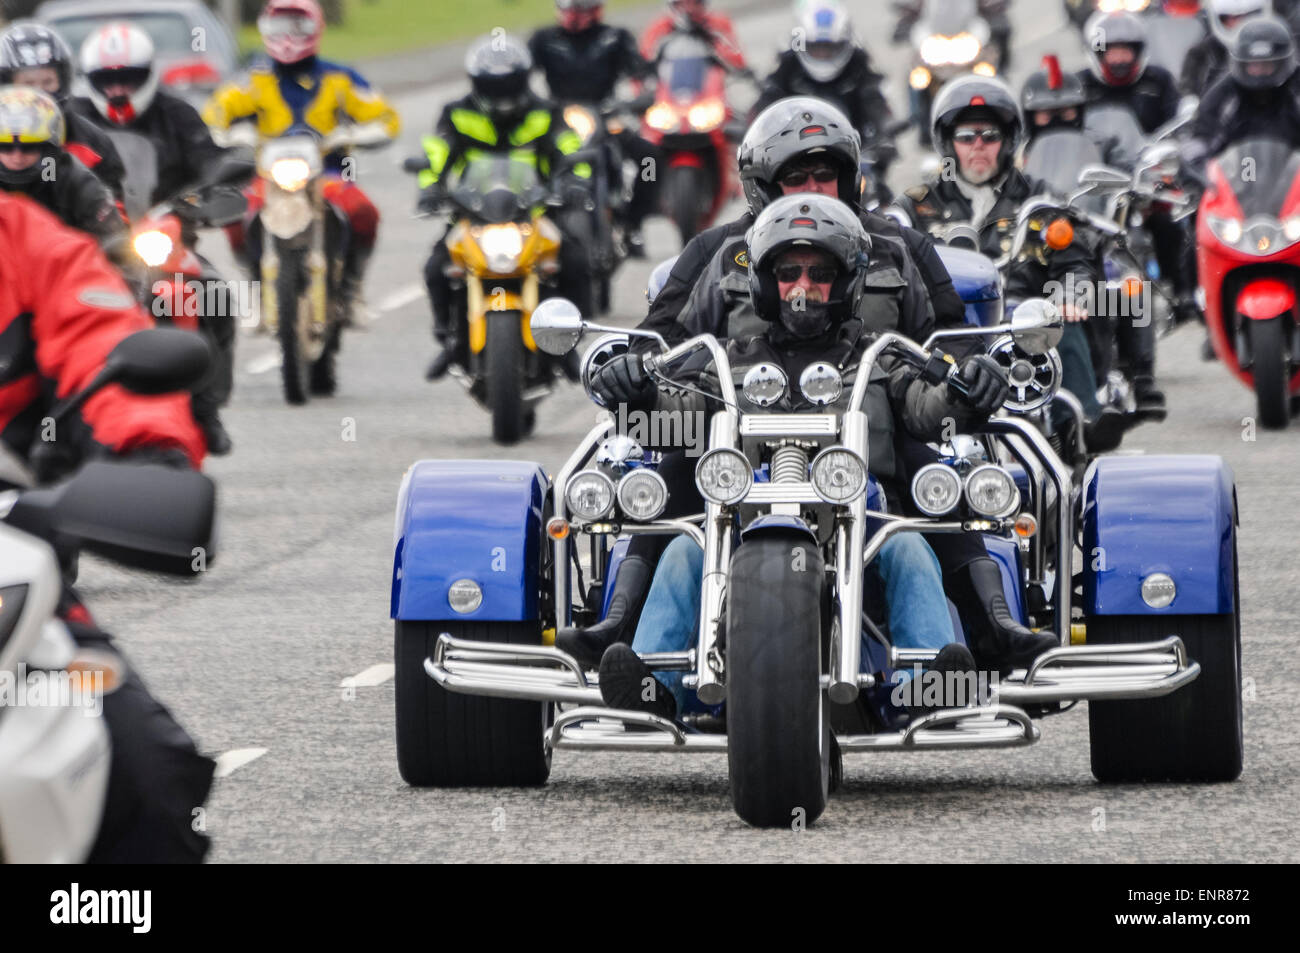 Carrickfergus, Northern Ireland. 10 May 2015. A man and passenger ride on a three wheeled motorcycle as Quay Vipers - Stock Image